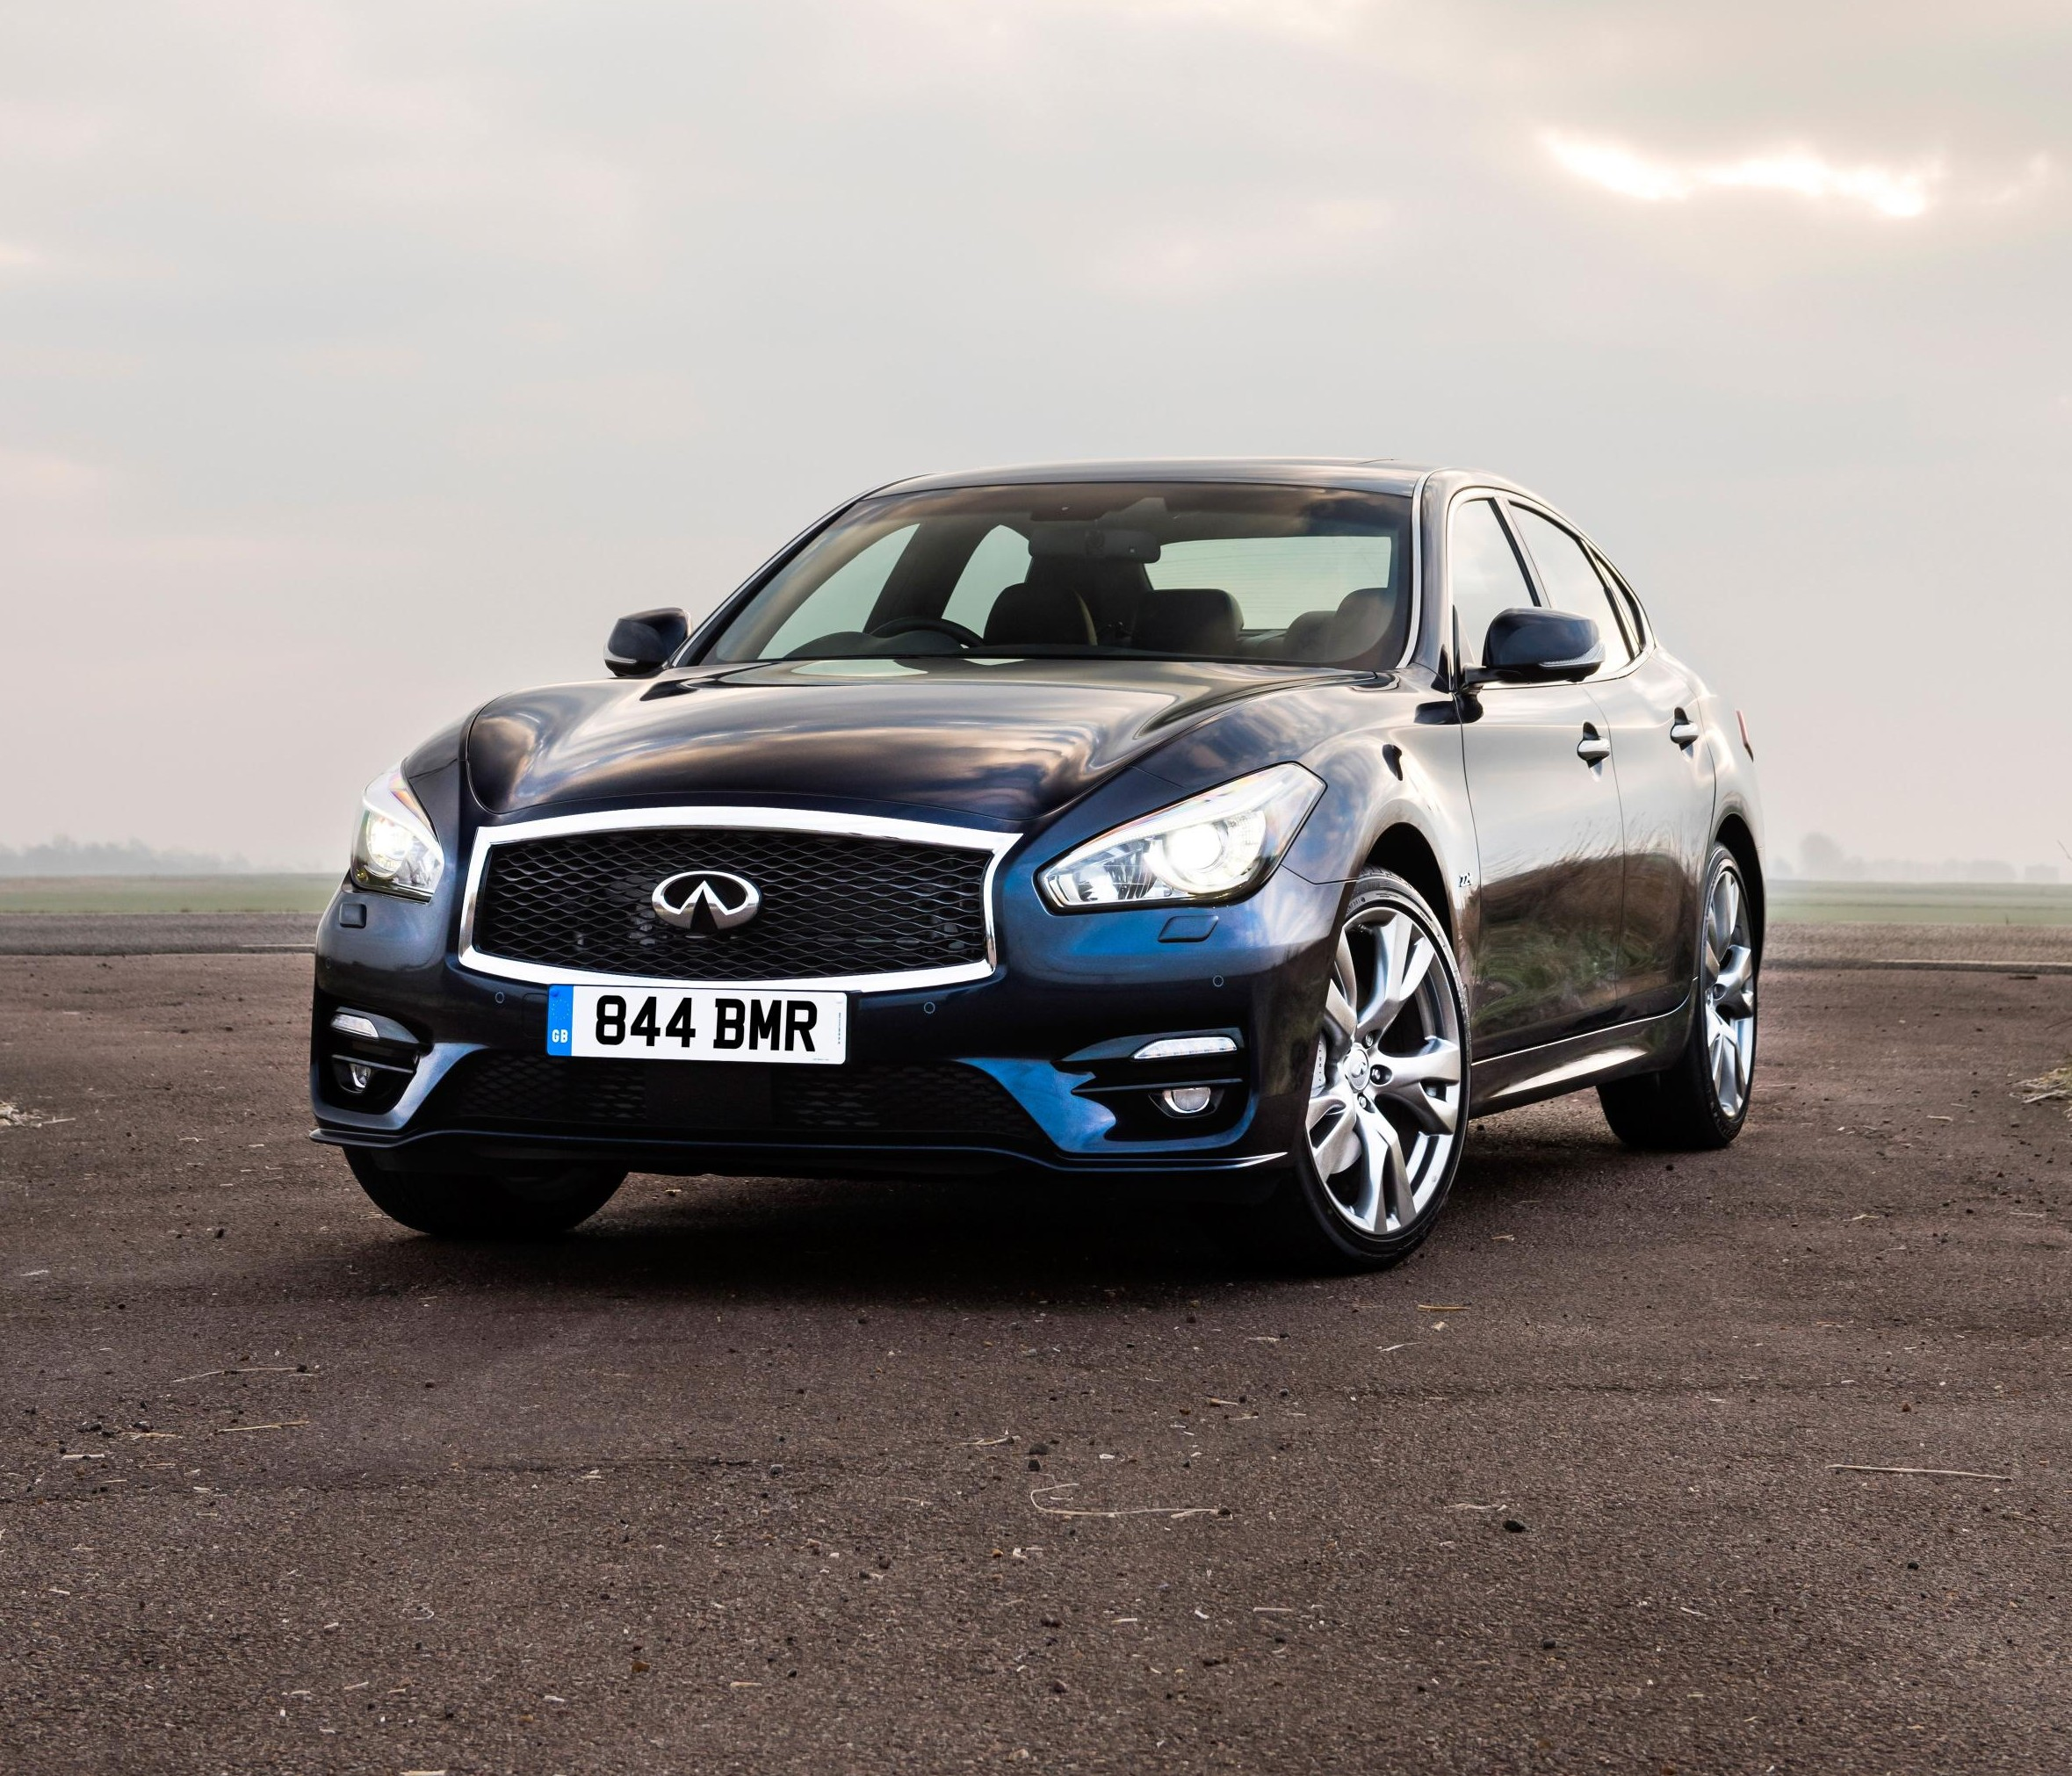 2015 Infiniti Q70 UK Prices And First Details